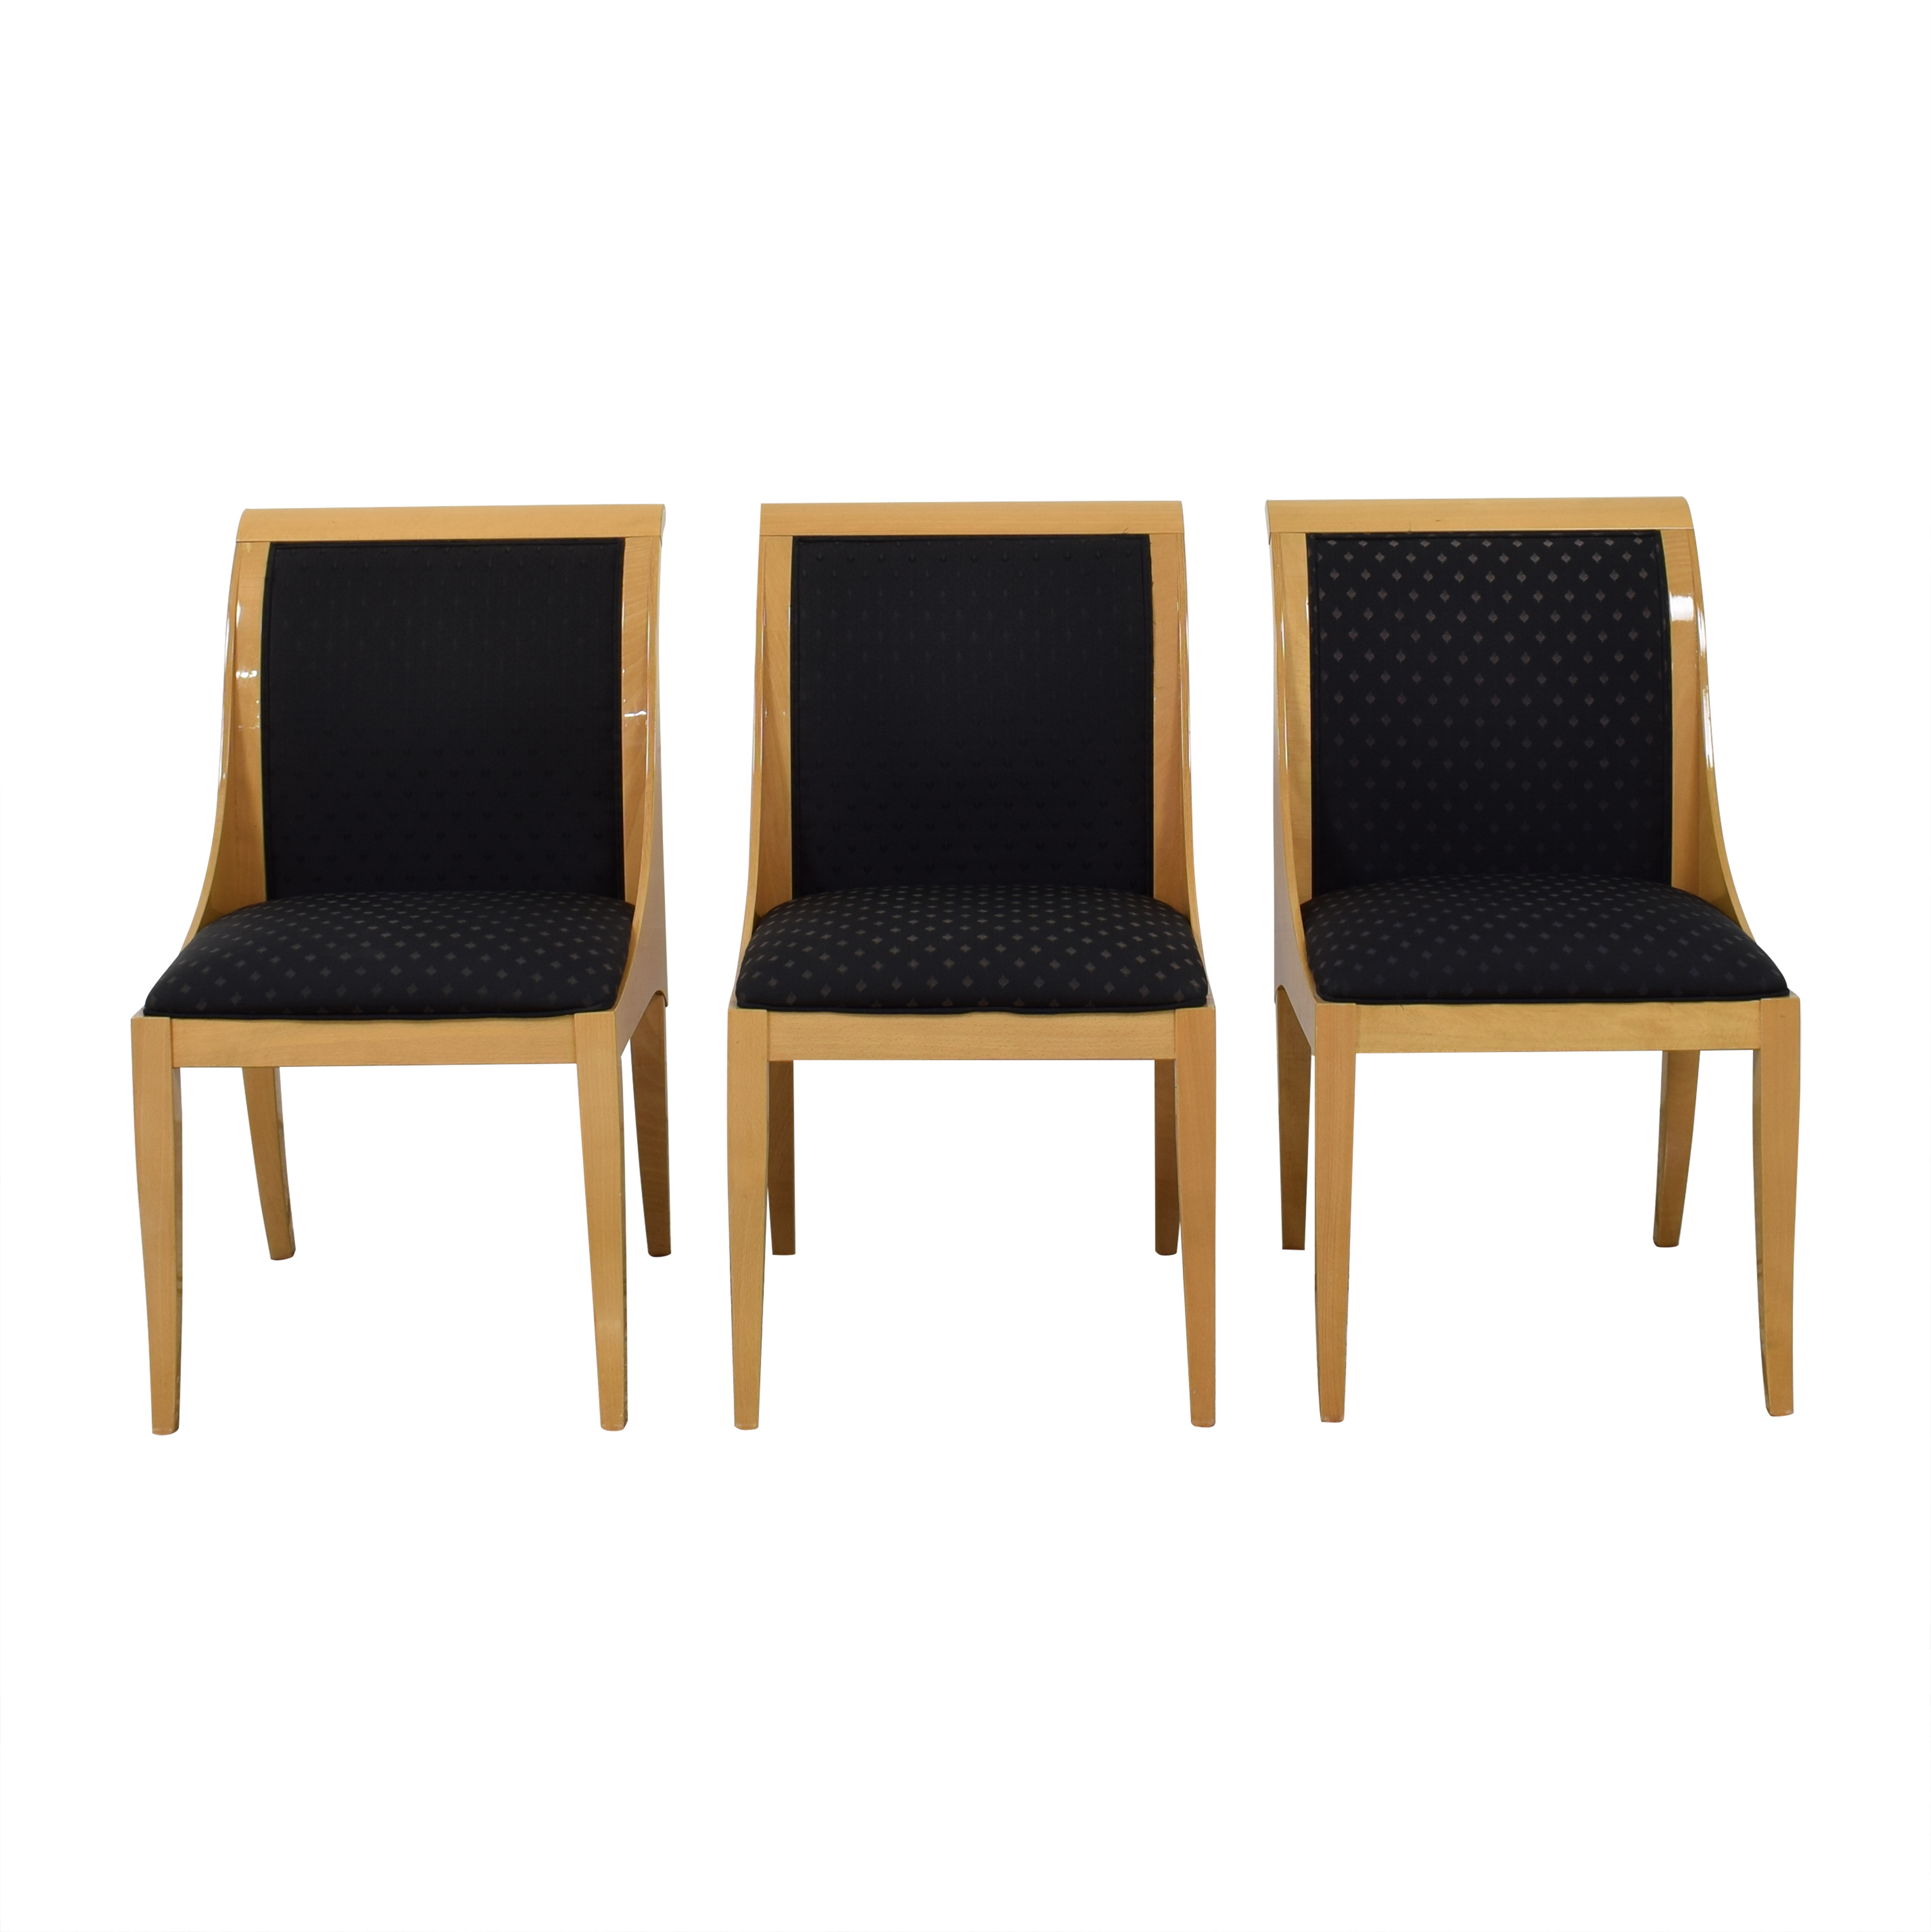 buy Pietro Costantini Costantini Pietro Upholstered Dining Chairs online